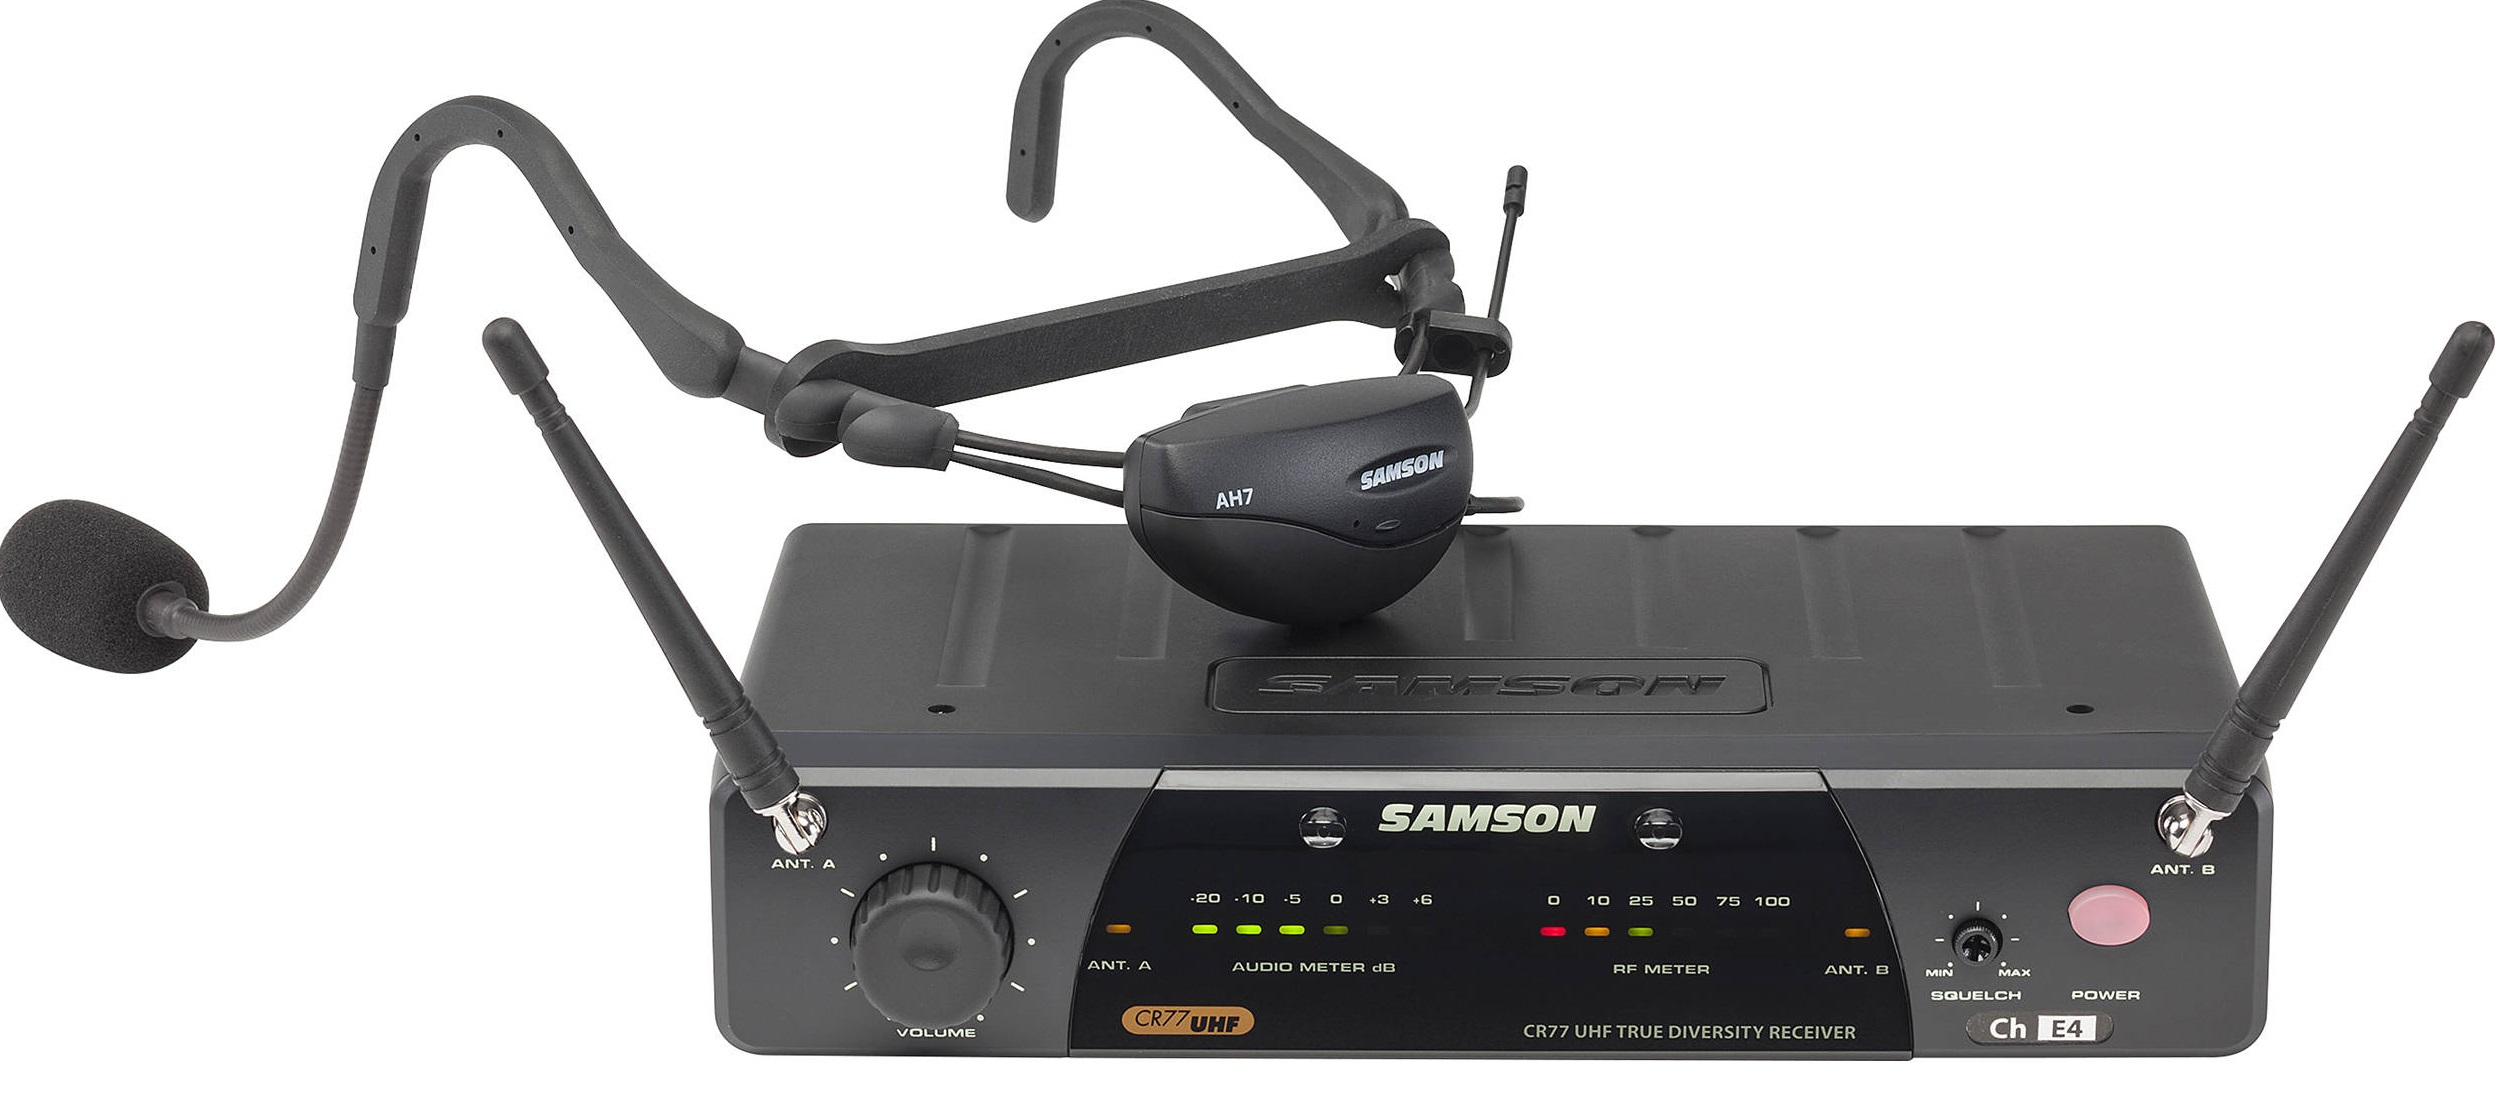 samson-airline-77-qe-fitness-headset-system-band-k2.jpeg